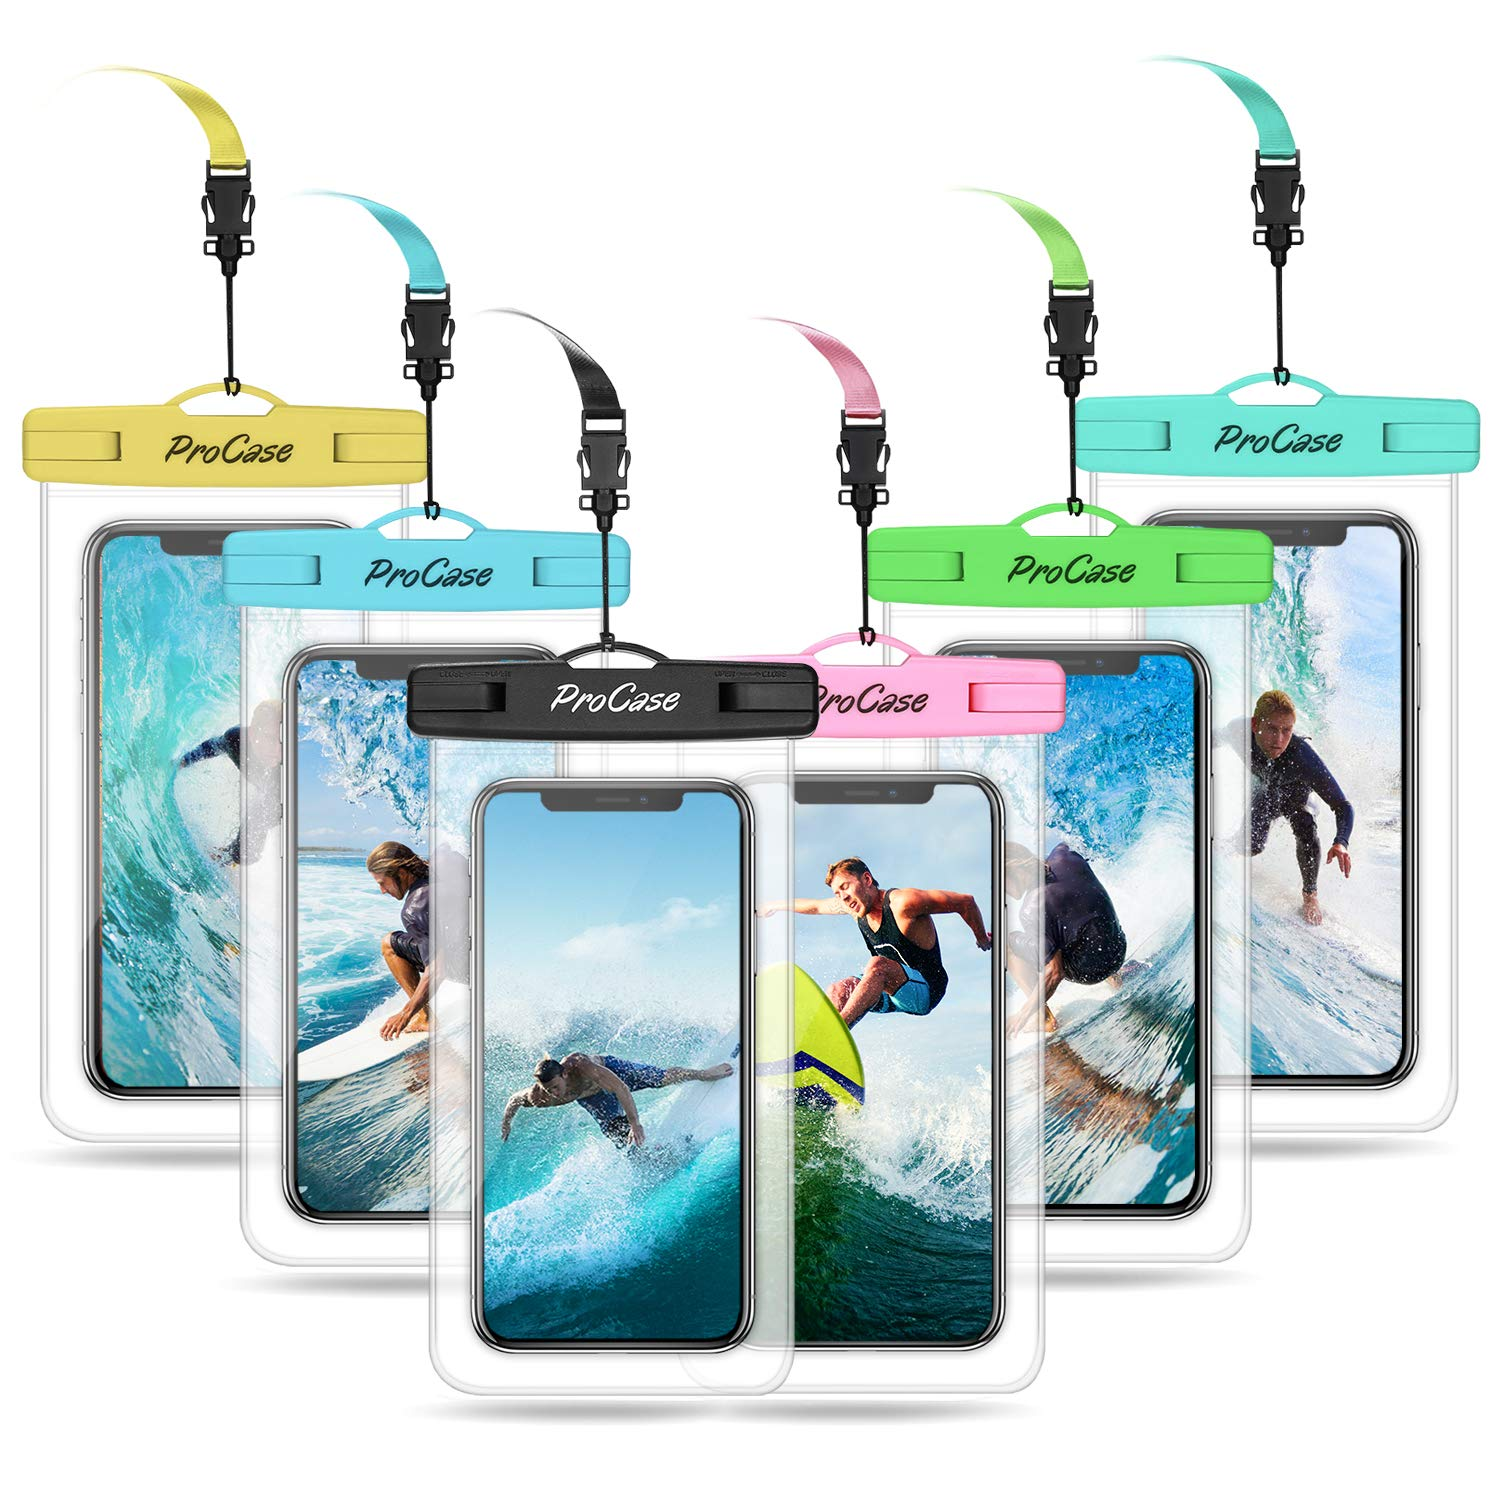 """Procase Universal Waterproof Pouch Cellphone Dry Bag Underwater Case for iPhone 11 Pro Max Xs Max XR 8 7 SE 2020 Galaxy S20 Ultra up to 6.9"""", Waterproof Phone Case for Beach Snorkeling -6 Pack"""